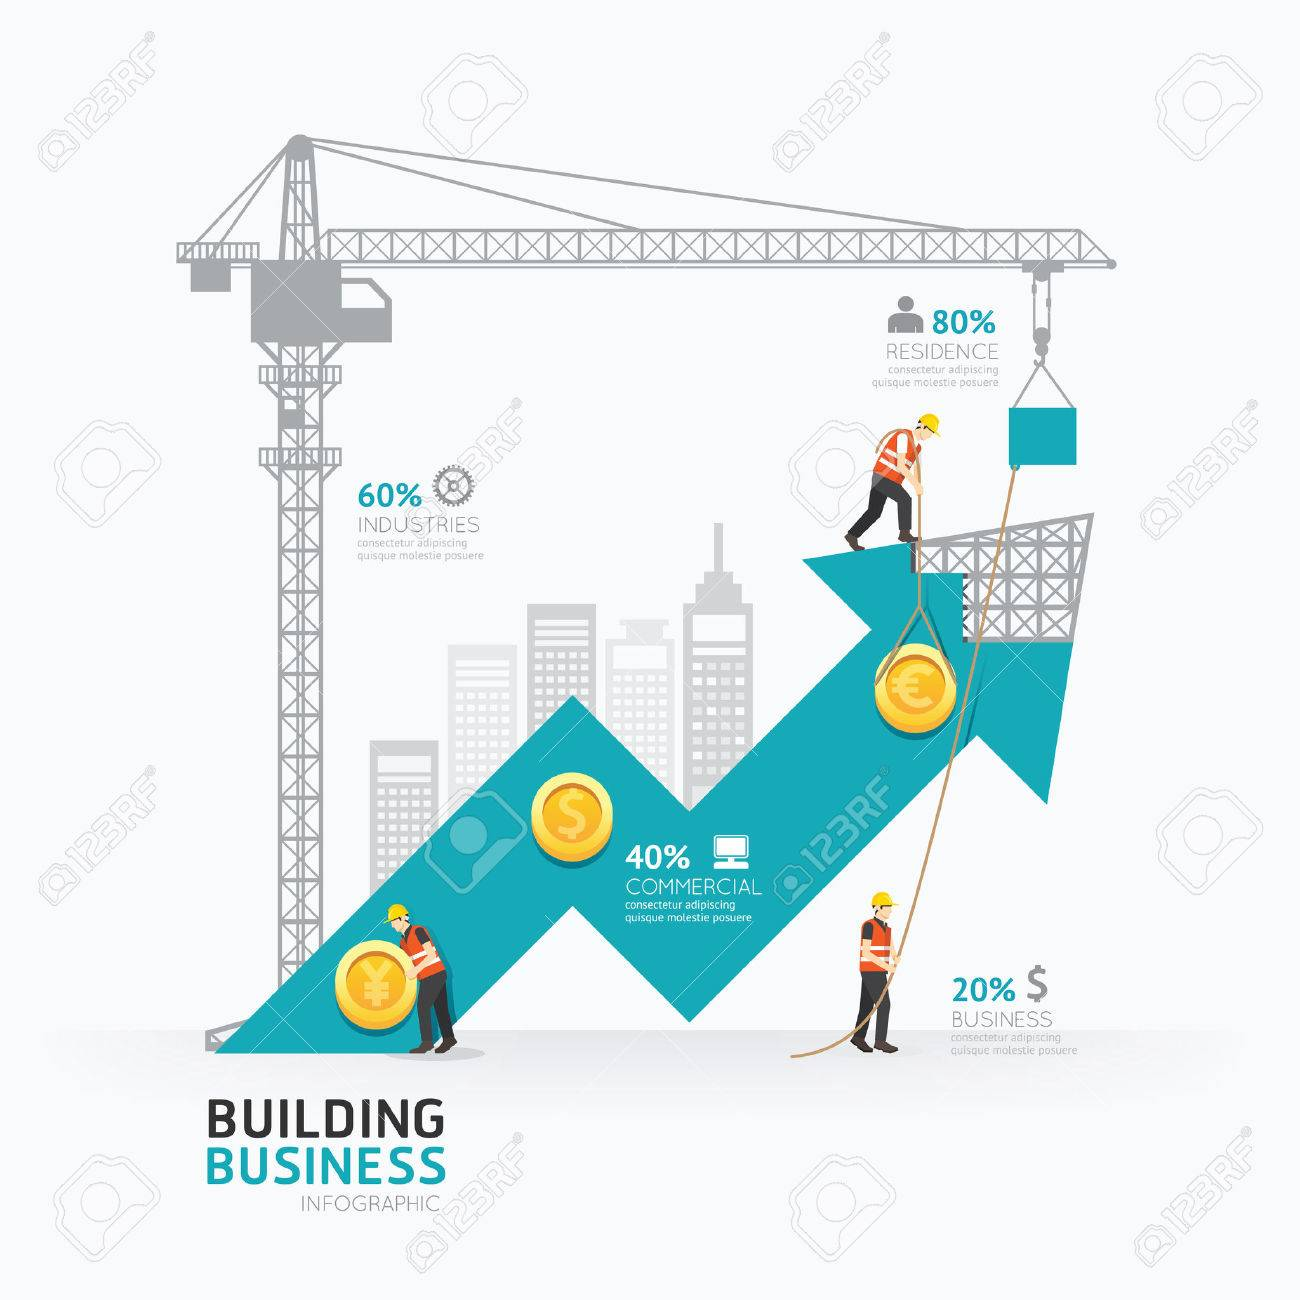 Infographic business arrow shape template design.building to success concept vector illustration / graphic or web design layout. Standard-Bild - 40686841